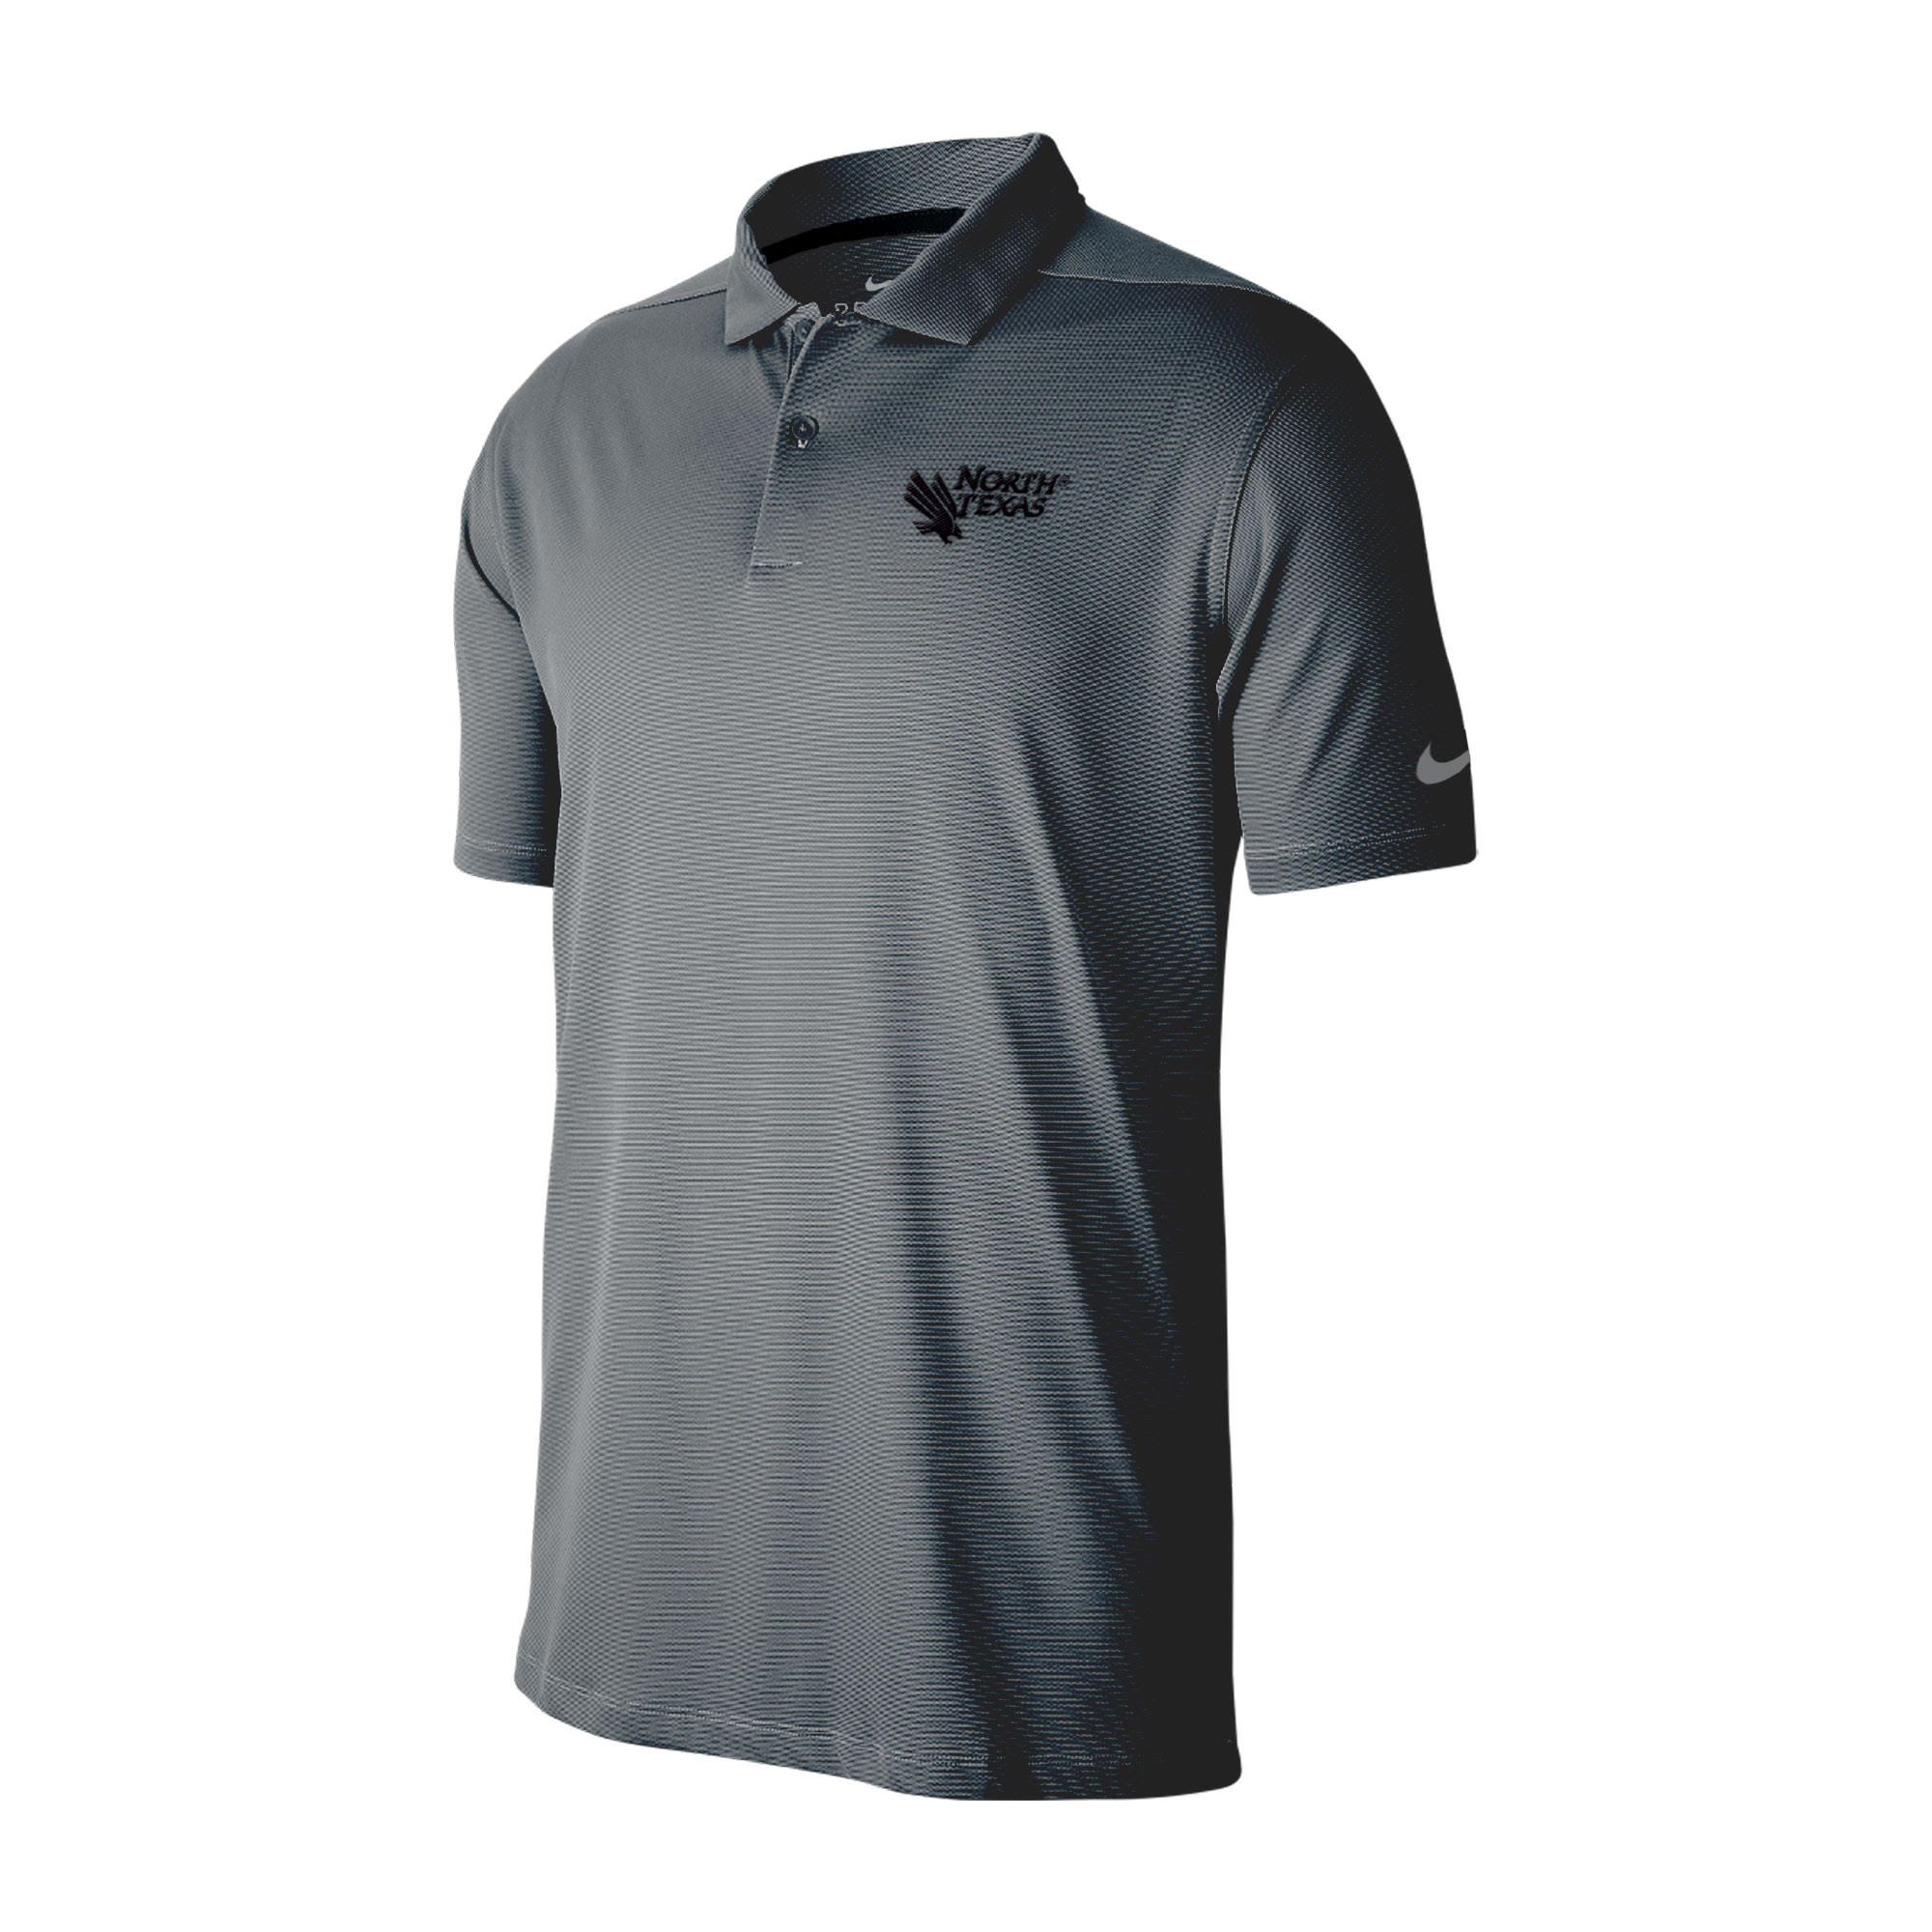 VICTORY TEXTURE POLO